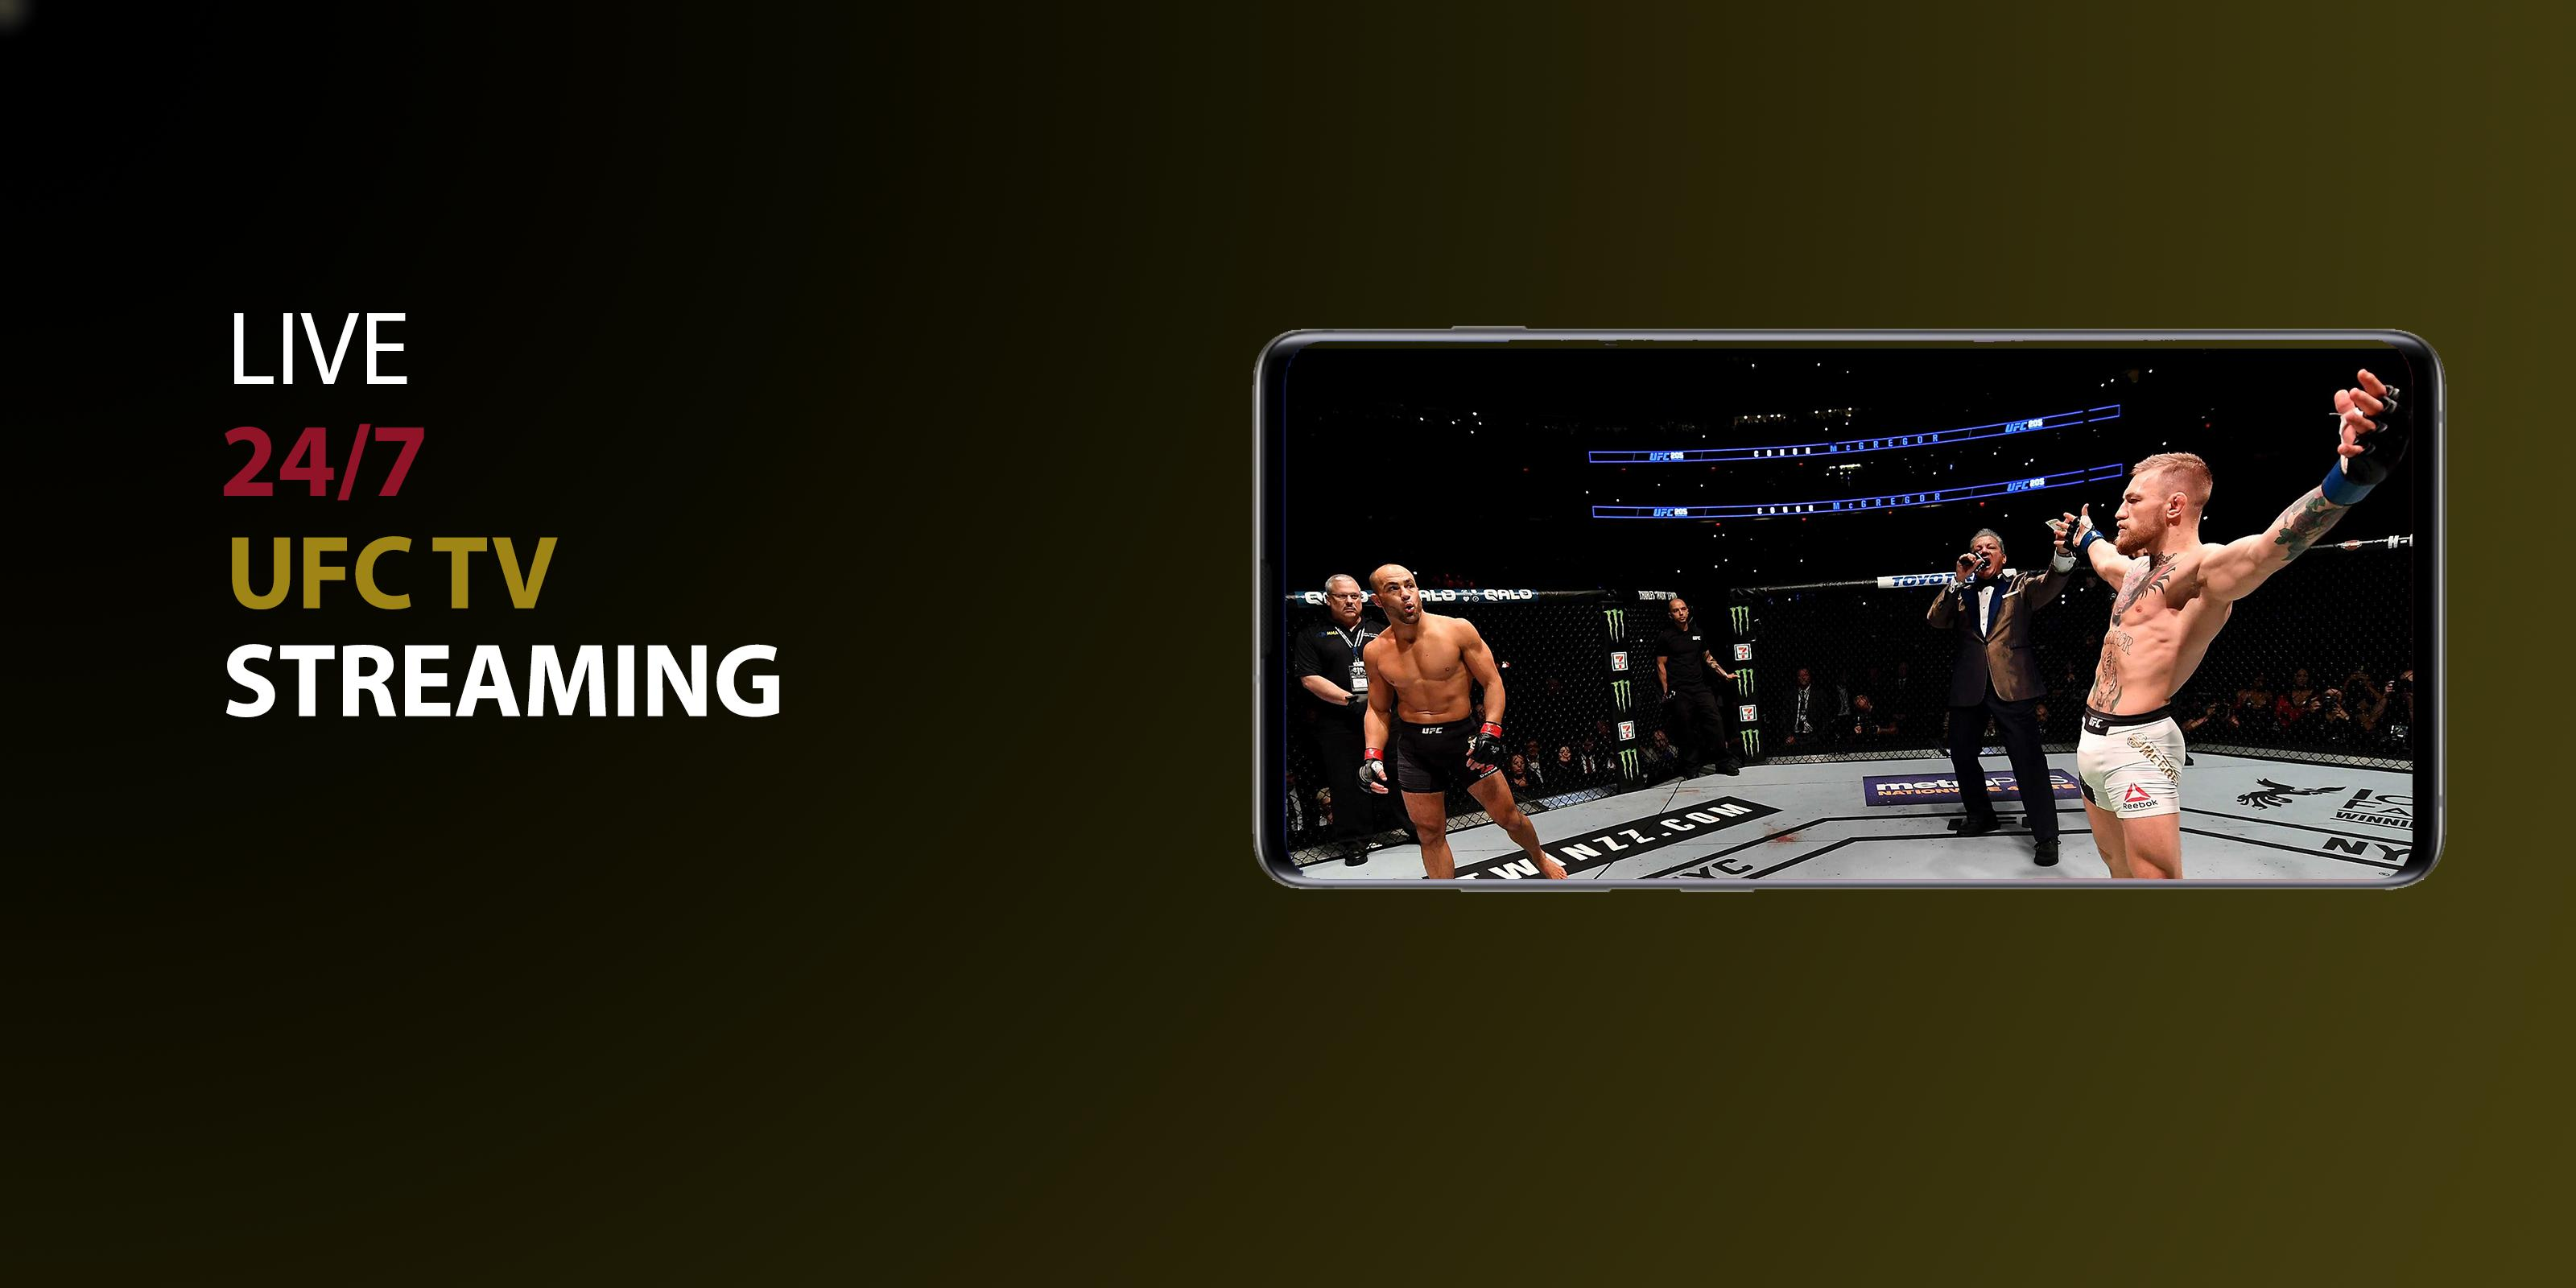 Boxing Live Streaming Free In Hd Ufc Live Pour Android Telechargez L Apk